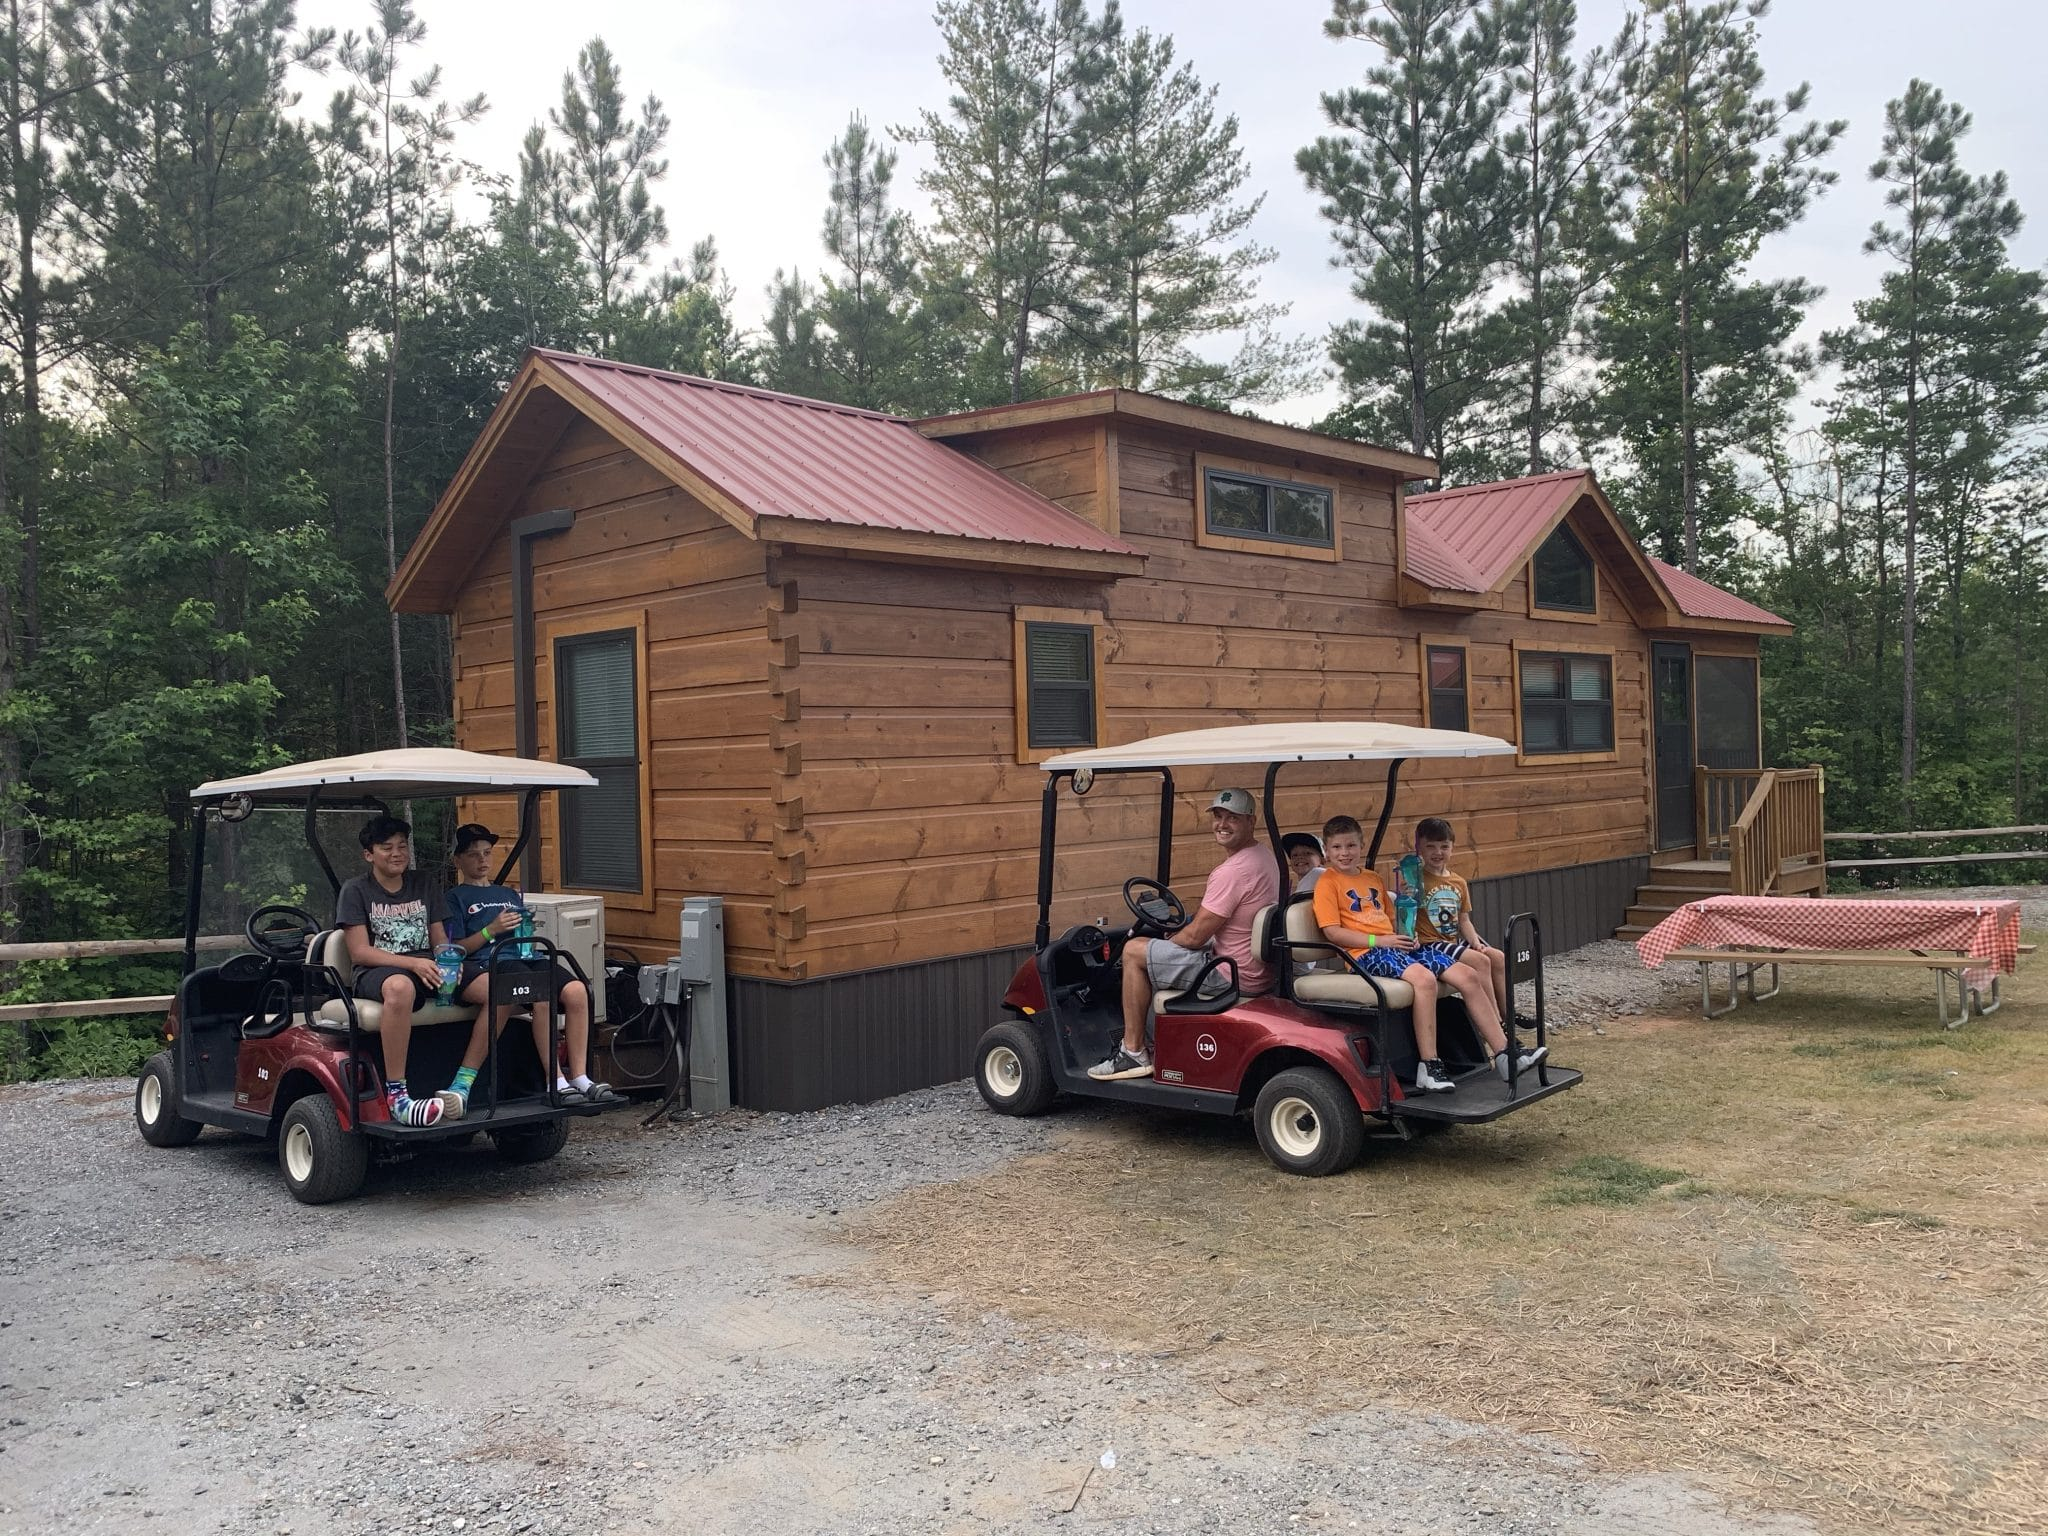 Golf Cart Rentals, Jellystone Golden Valley, North Carolina Camping, Stilettos and Diapers